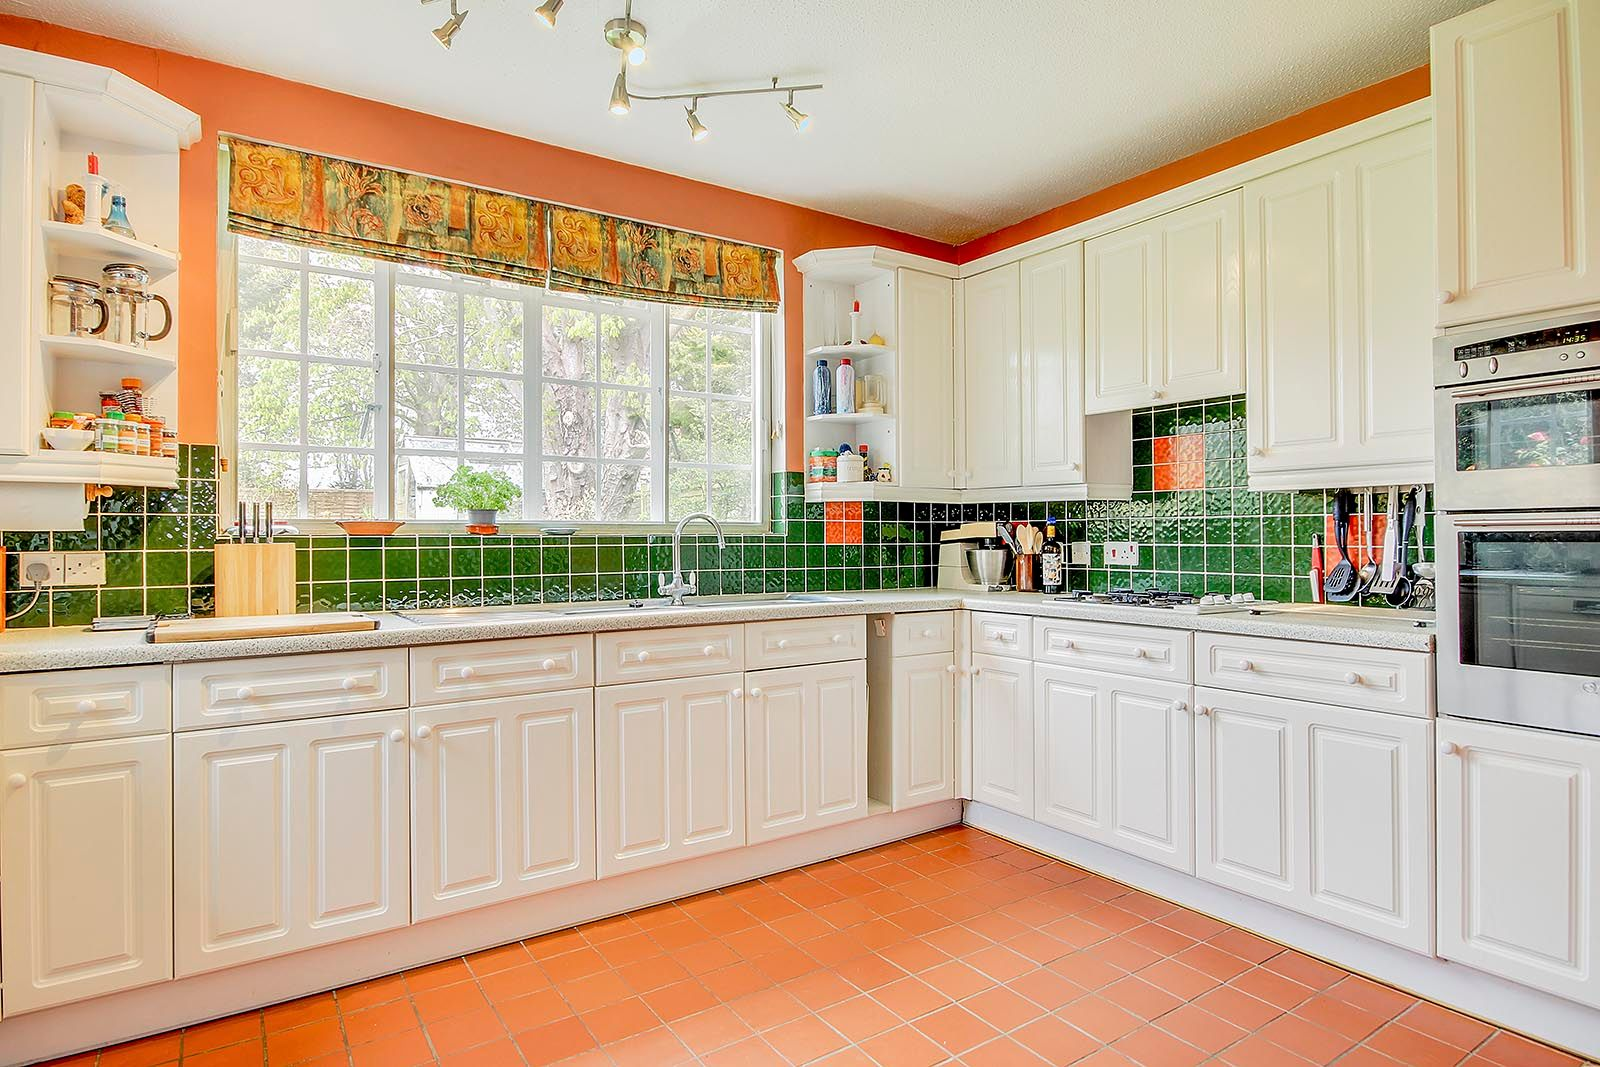 4 bed house for sale in Mill Road (COMP AUG 19) 12